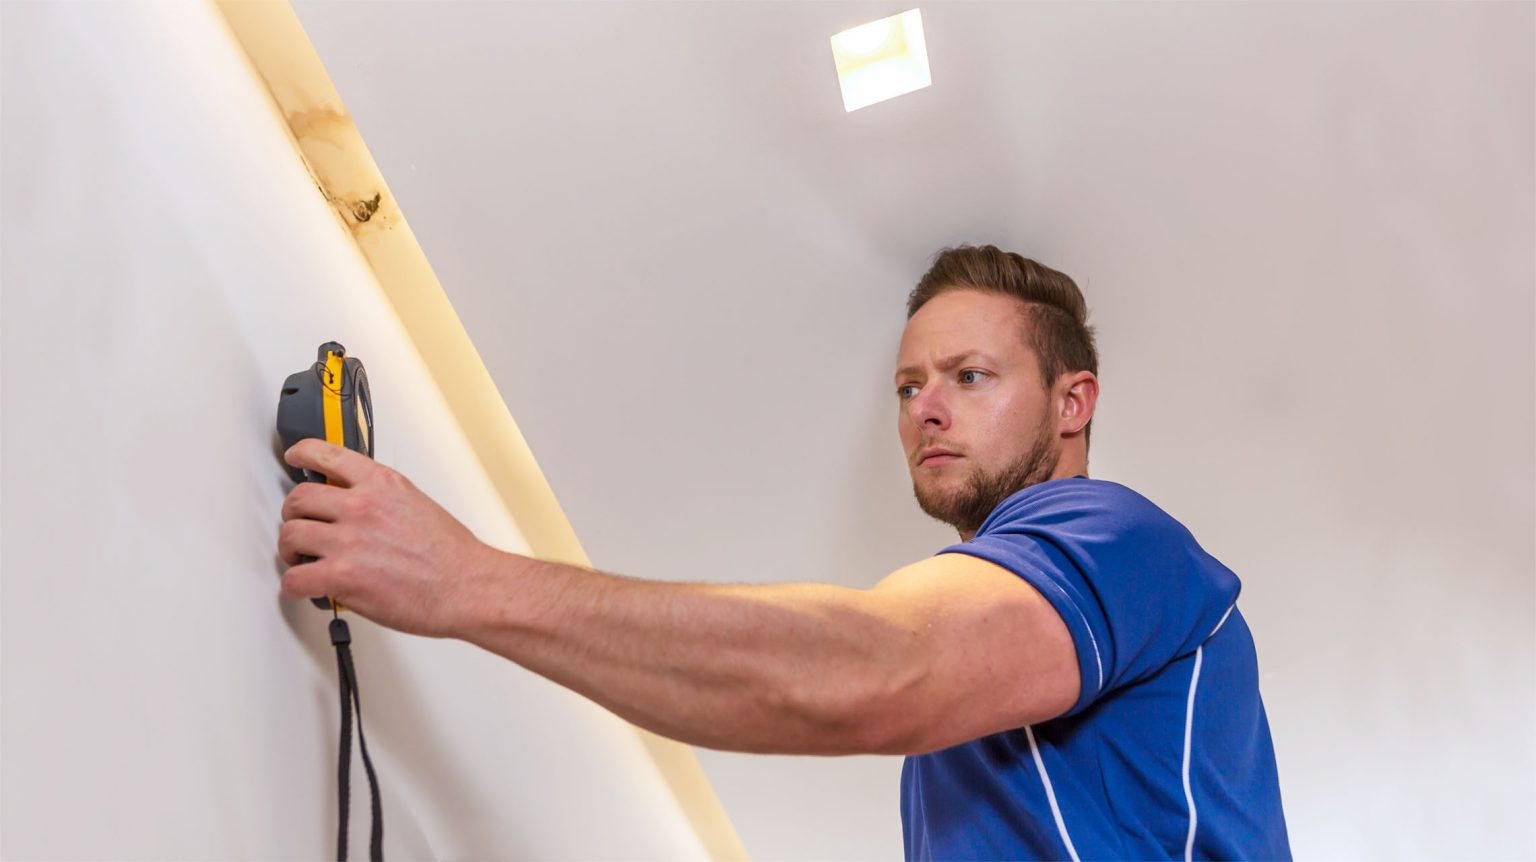 Detecting the sources of damp and mould